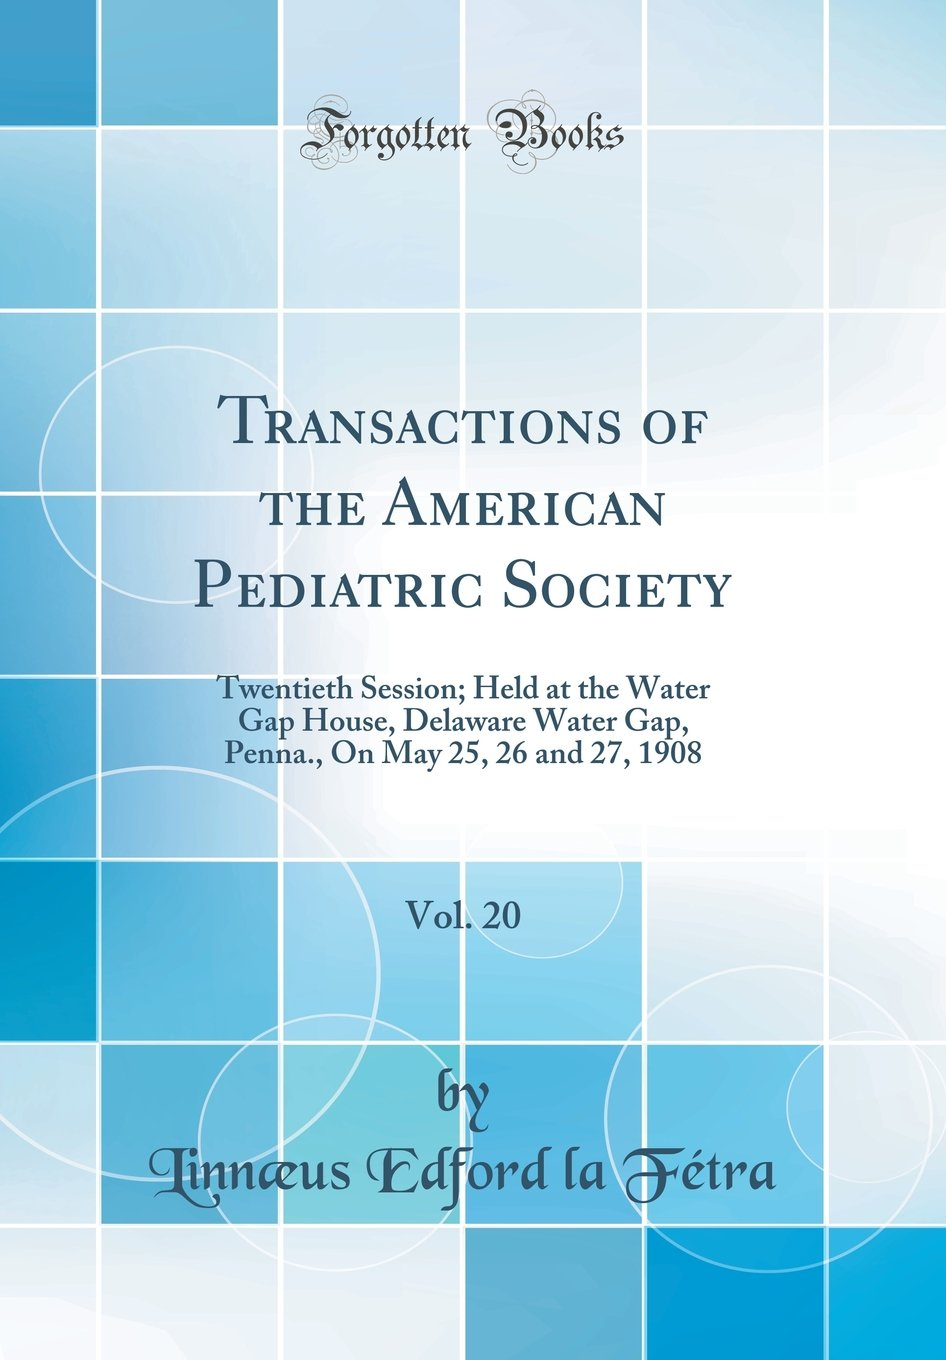 Read Online Transactions of the American Pediatric Society, Vol. 20: Twentieth Session; Held at the Water Gap House, Delaware Water Gap, Penna., On May 25, 26 and 27, 1908 (Classic Reprint) PDF